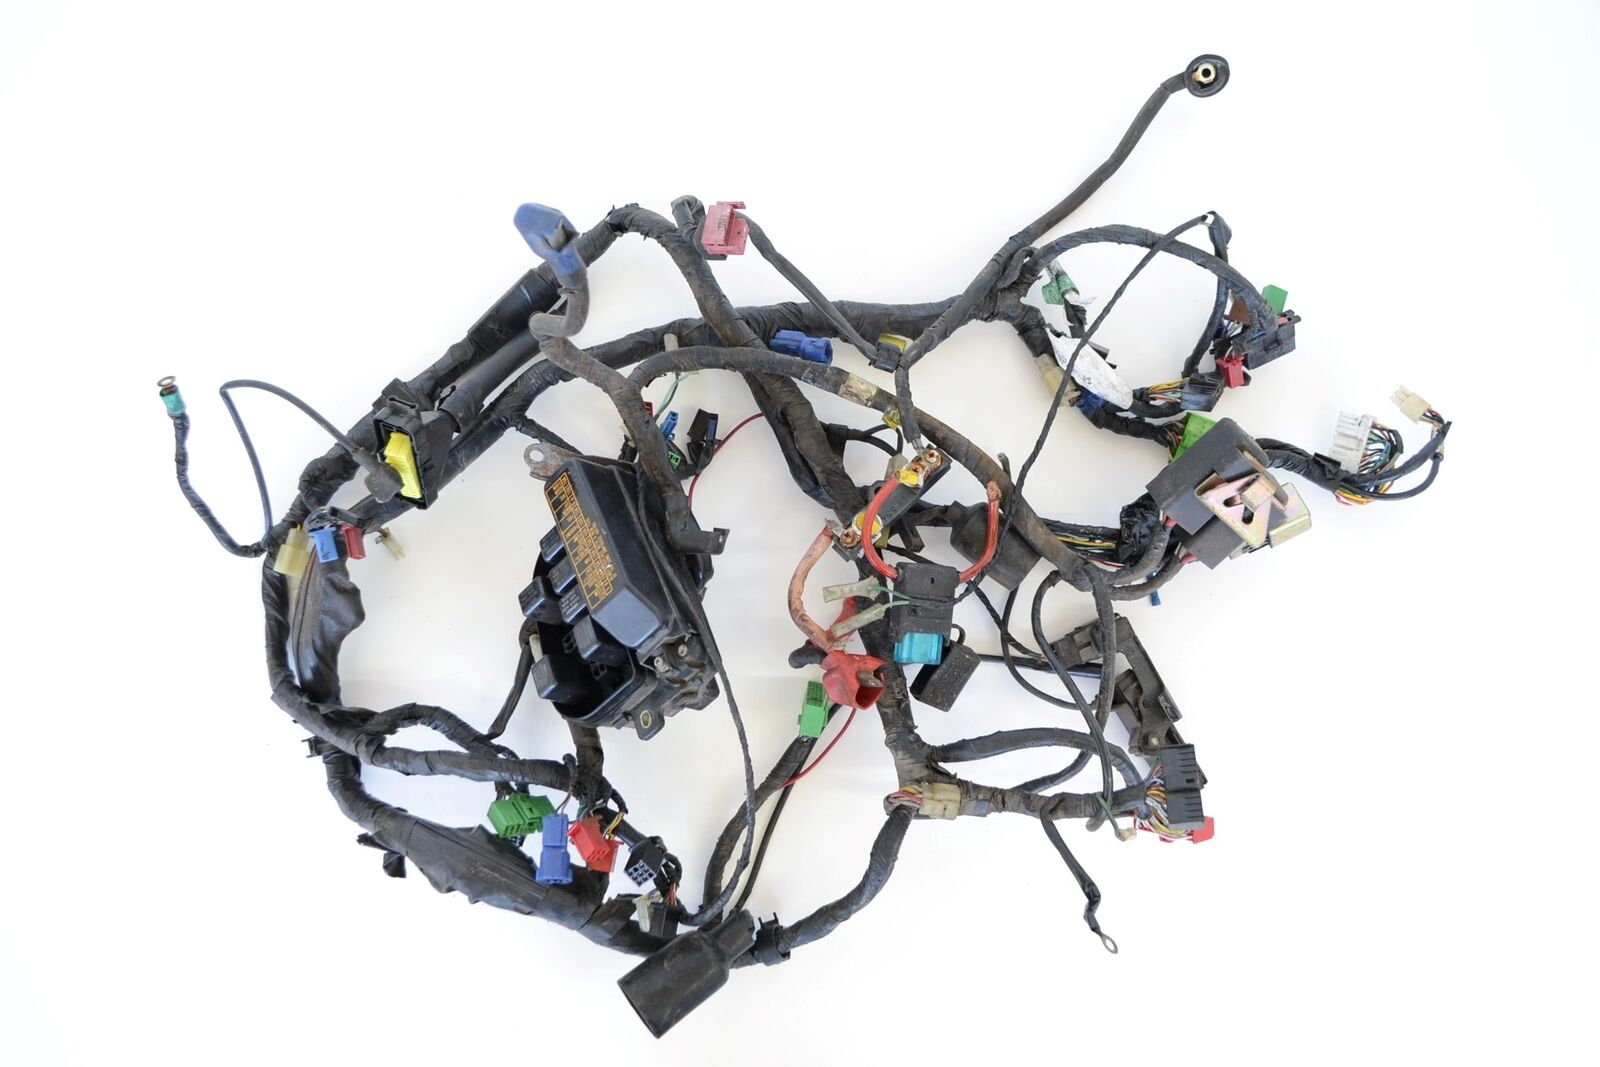 1990 Honda Gl 1500 Gold Wing Main Wiring Harness Loom 10000 2003 Goldwing 1 Of 5only Available